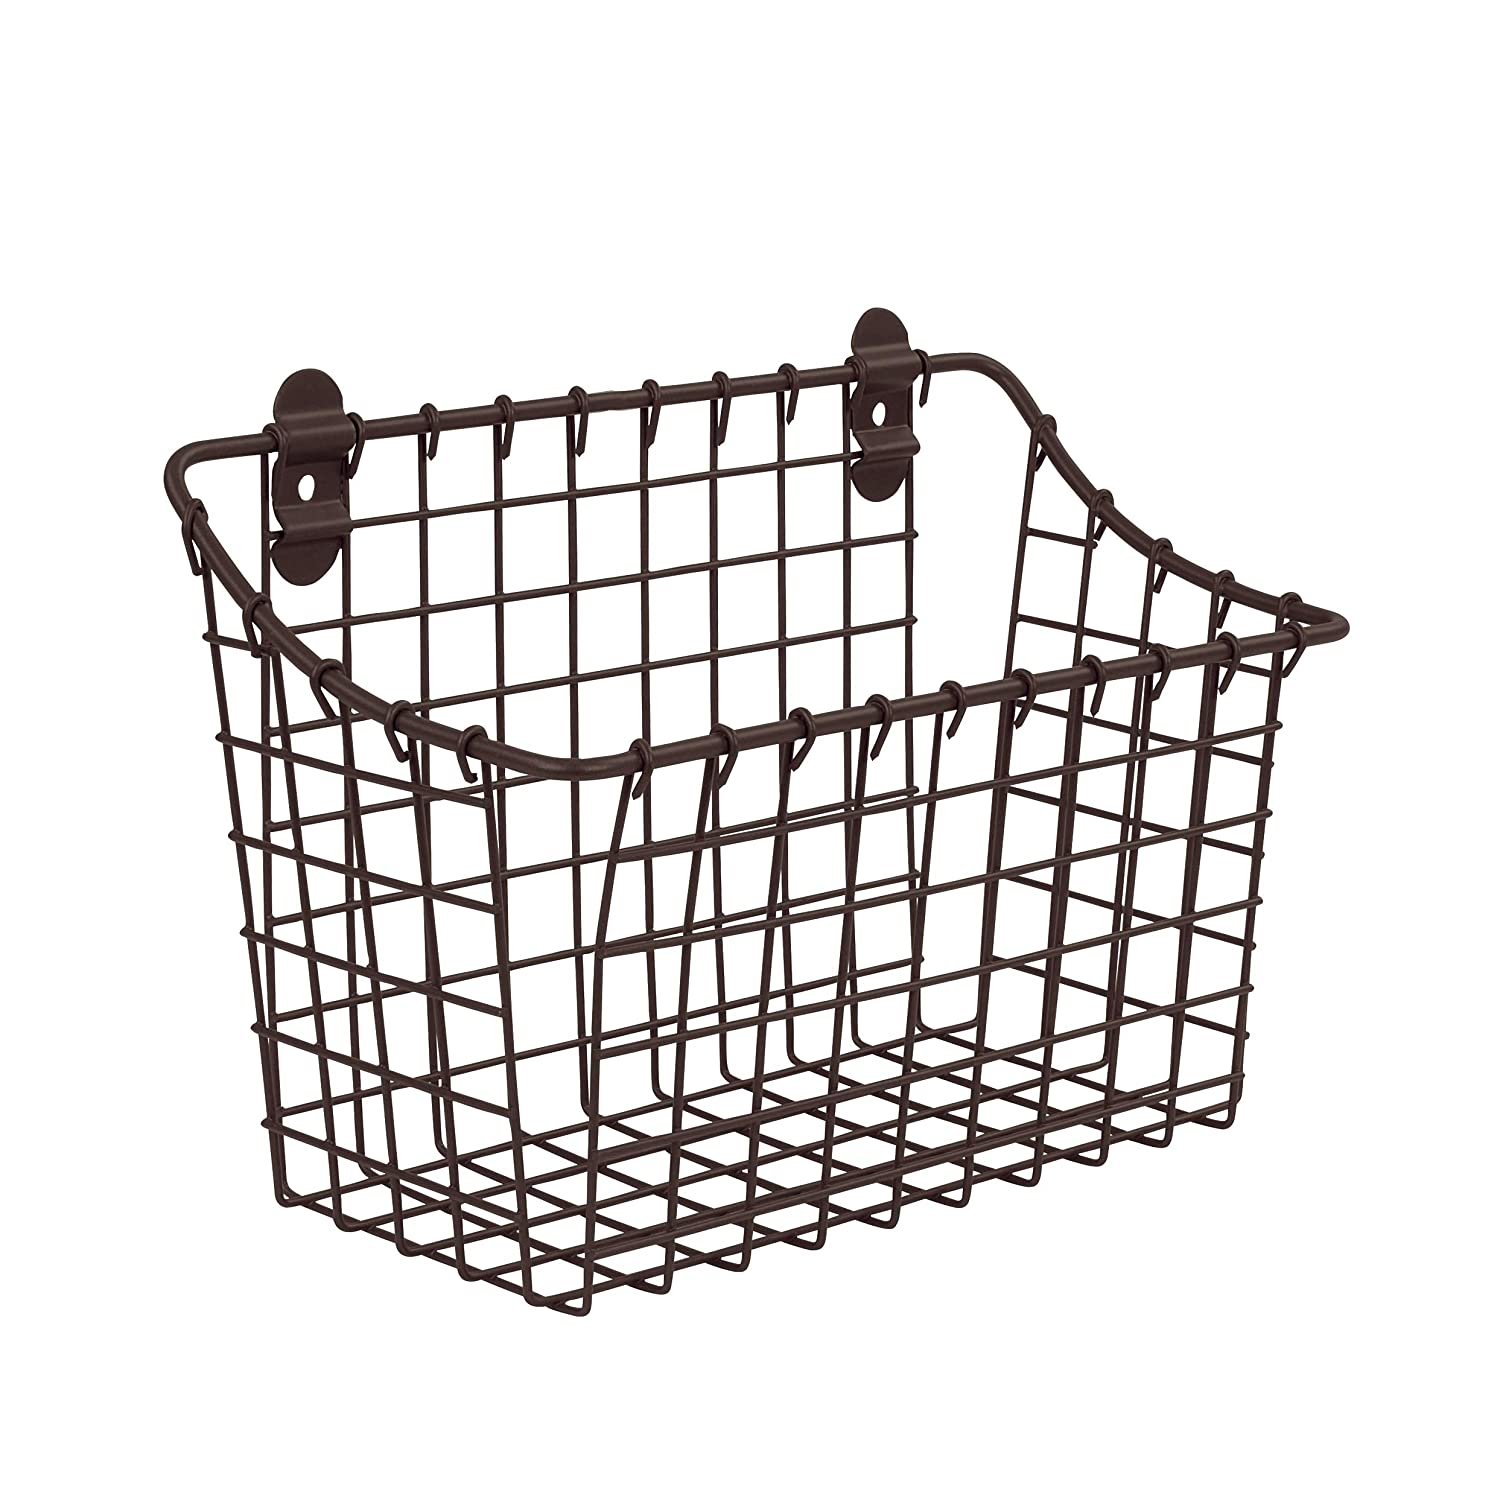 Bronze metal wall mount storage basket - and many more inspiring finds with a French inspired, European country theme...come see.